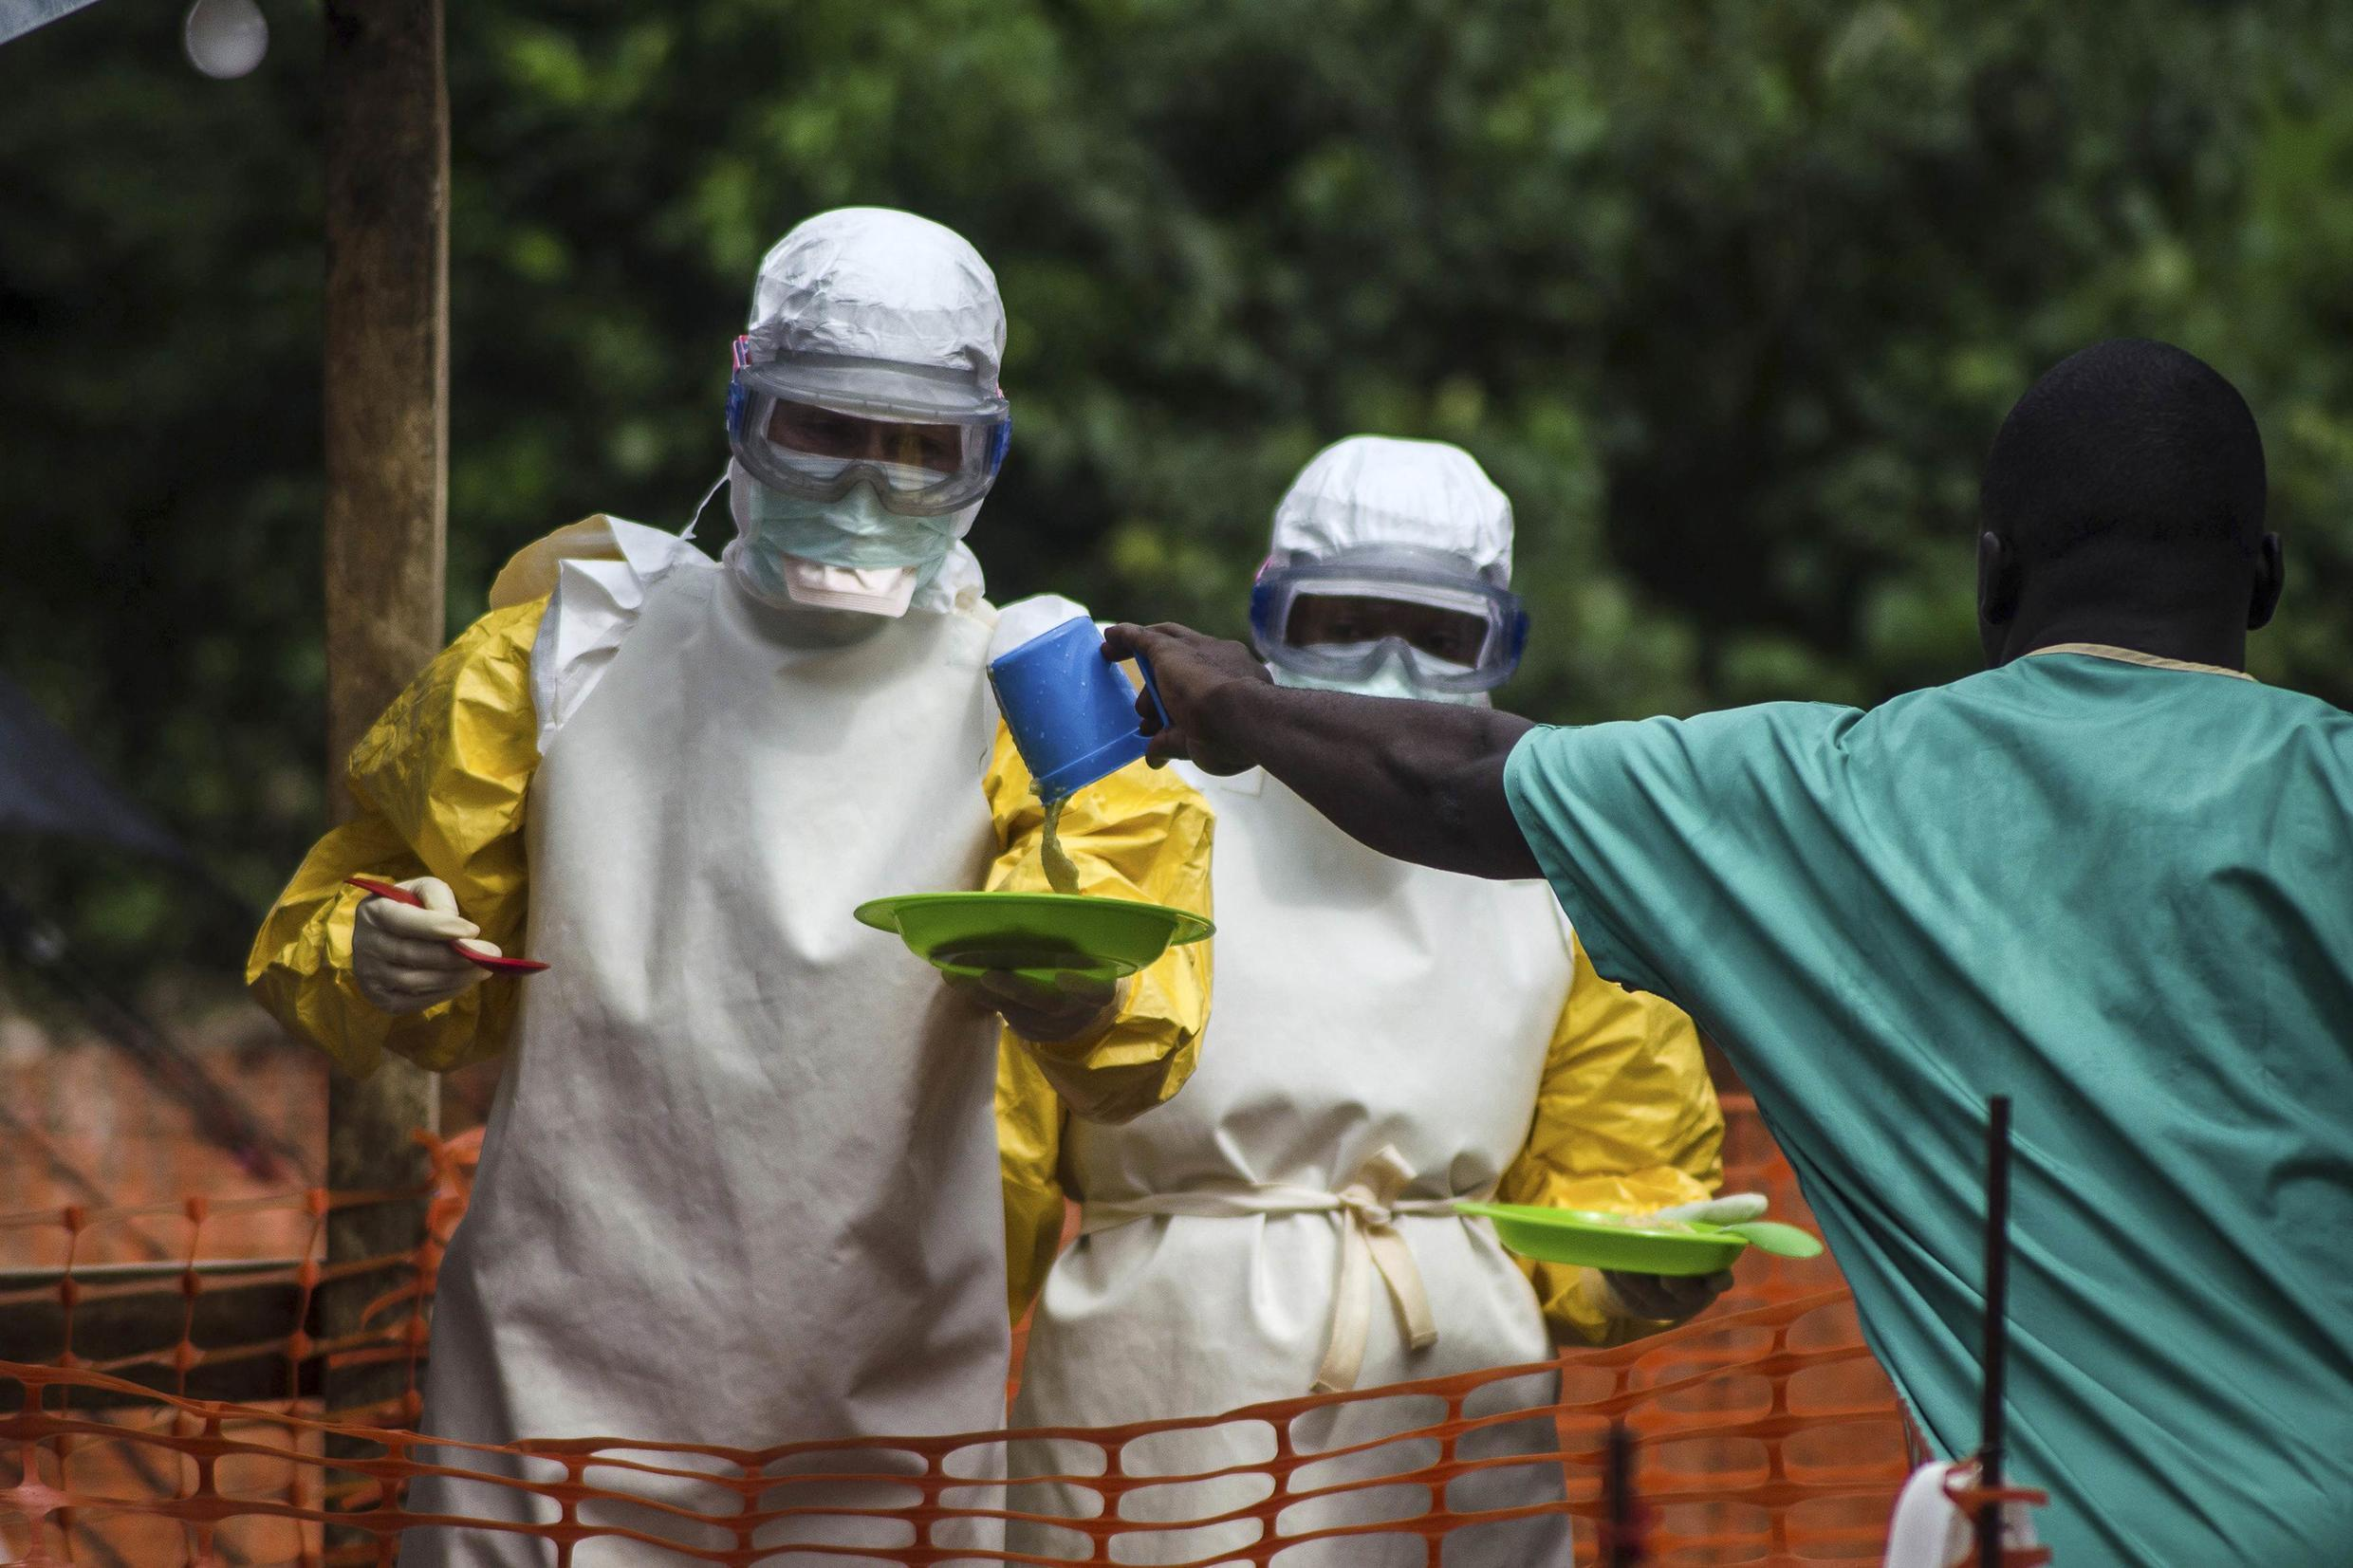 Staff preparing food for patients at Doctors Without Borders' Ebola treatment centre in Kailahun, Sierra Leone. 20 July 2014.